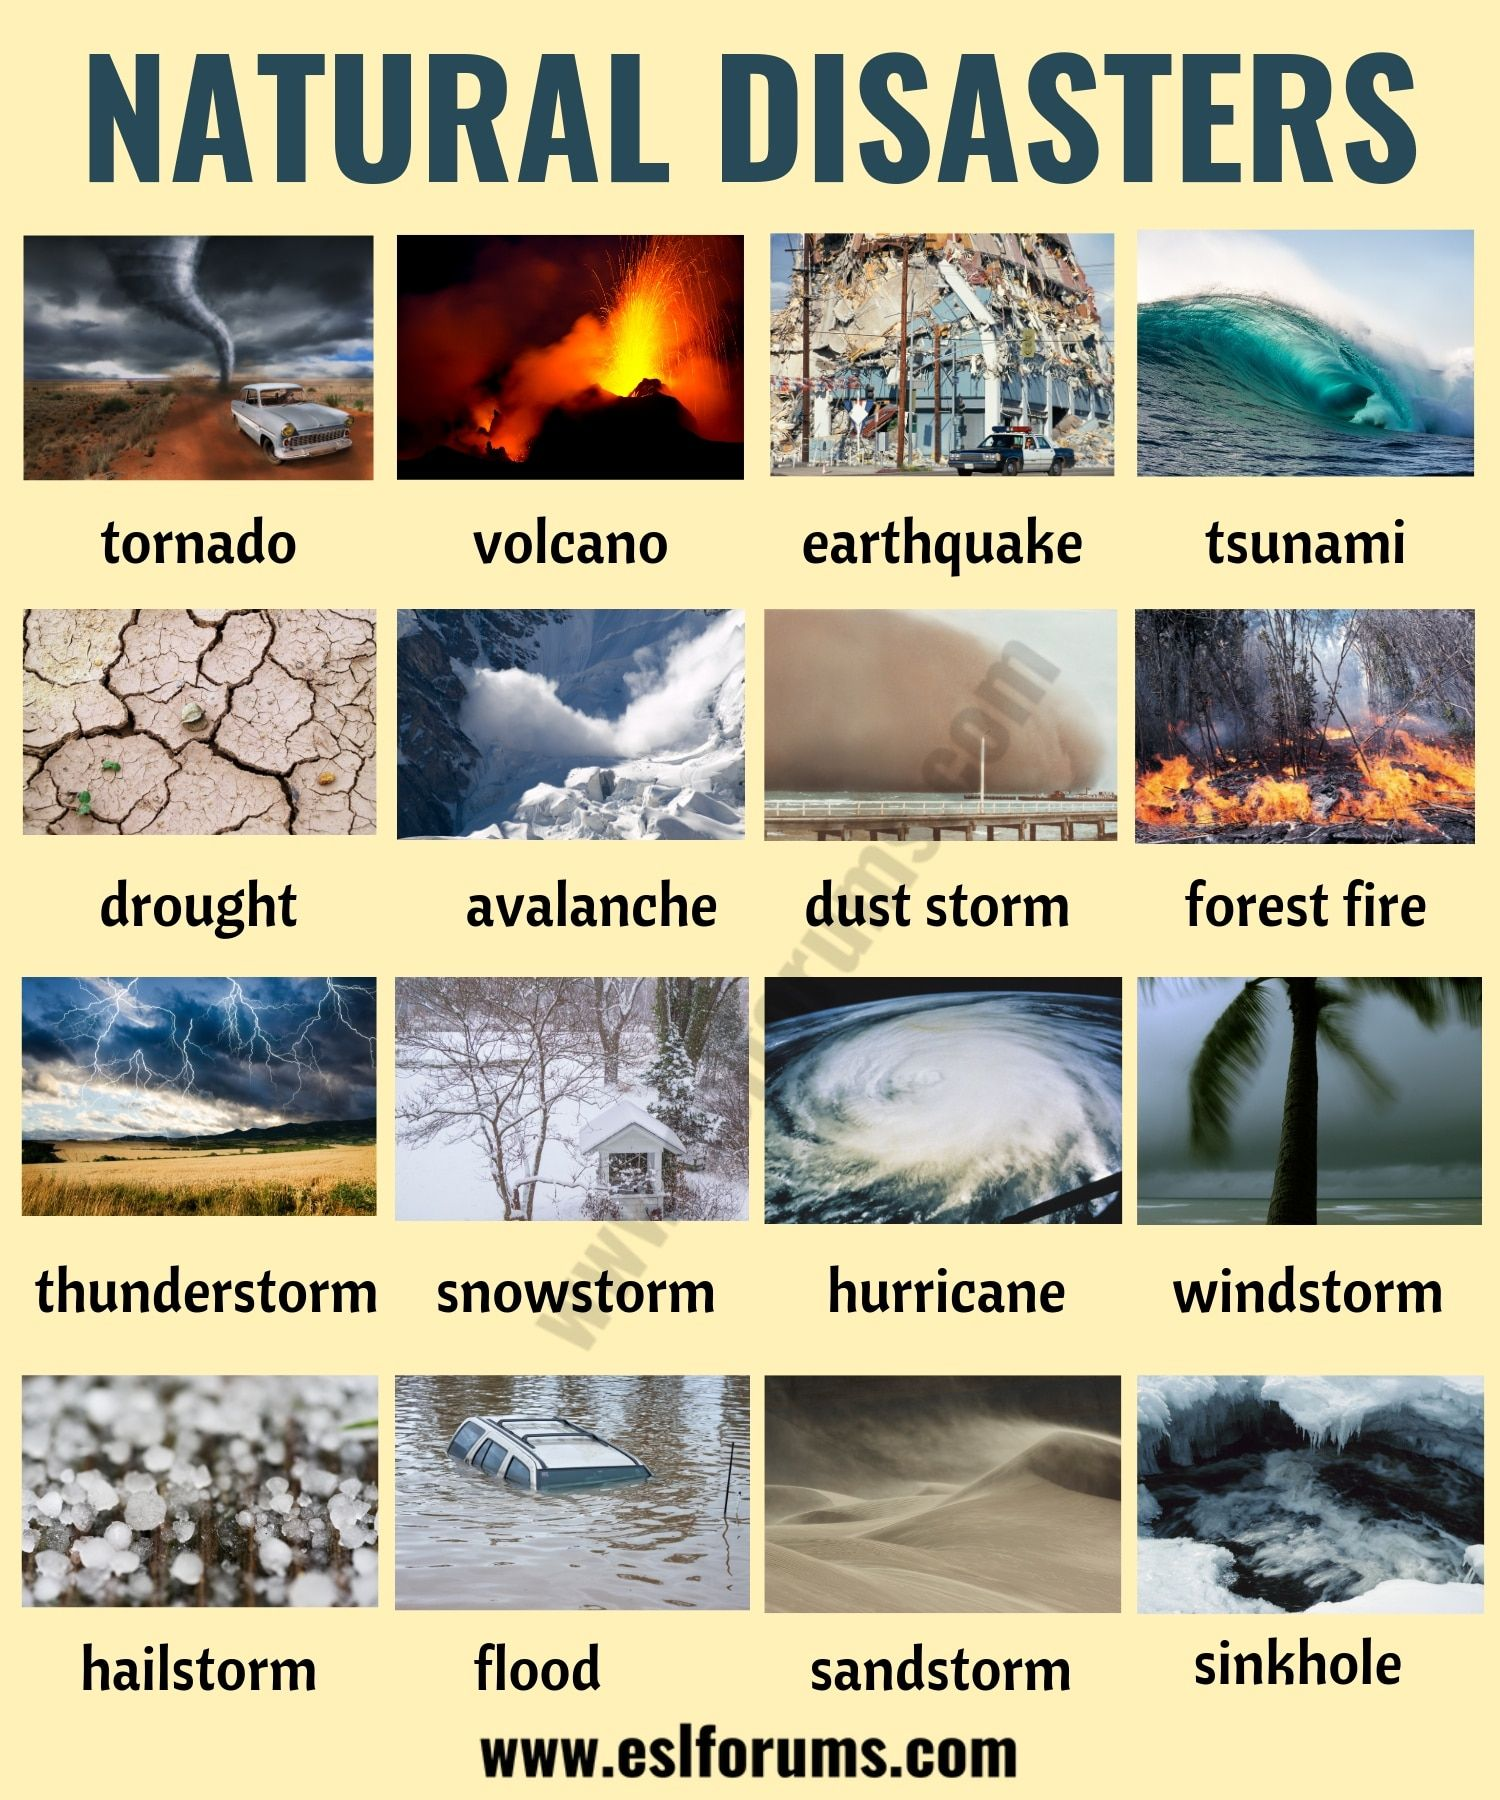 Natural Disasters Different Types Of Natural Disasters With Esl Pictures Natural Disasters English Teaching Materials Natural Disasters Lessons